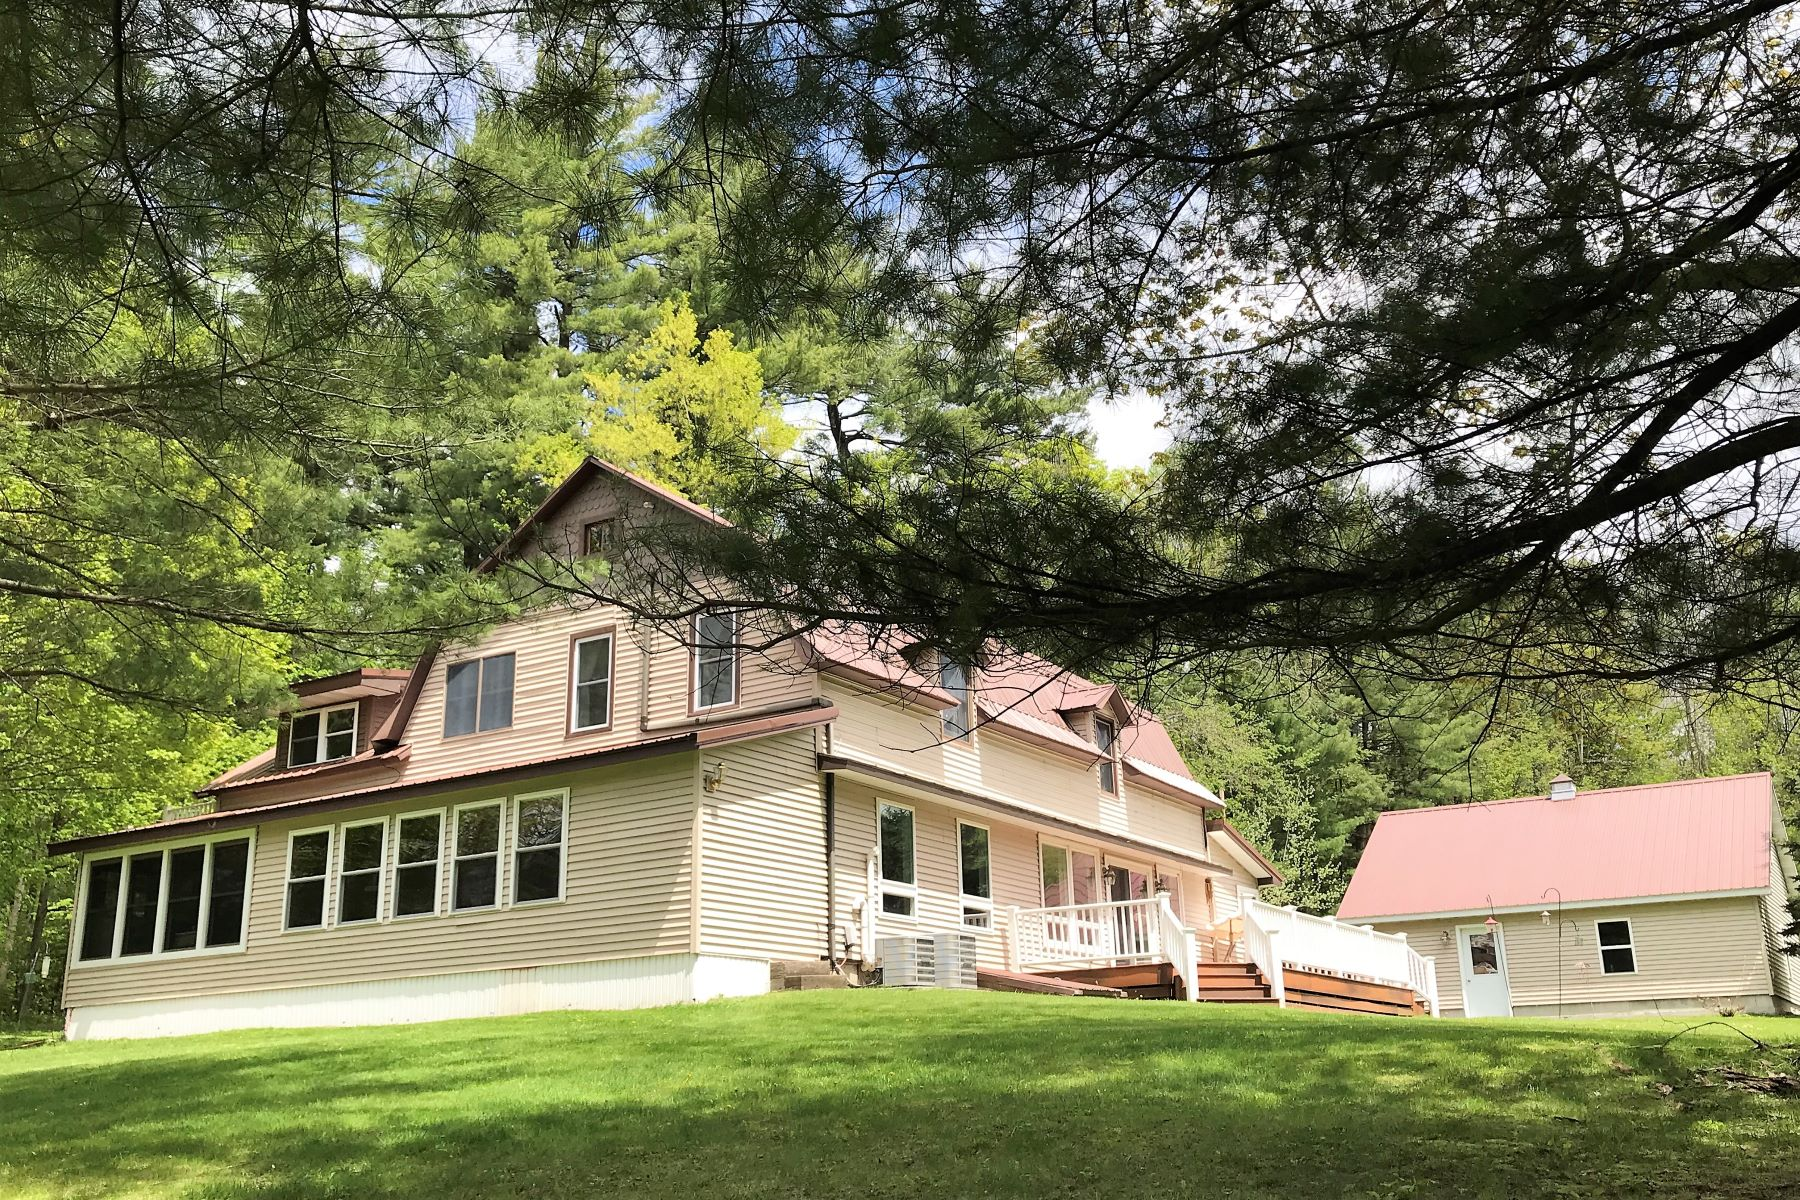 Single Family Homes for Active at Creekside Homestead 7118 Nortonville Rd. Lyonsdale, New York 13343 United States